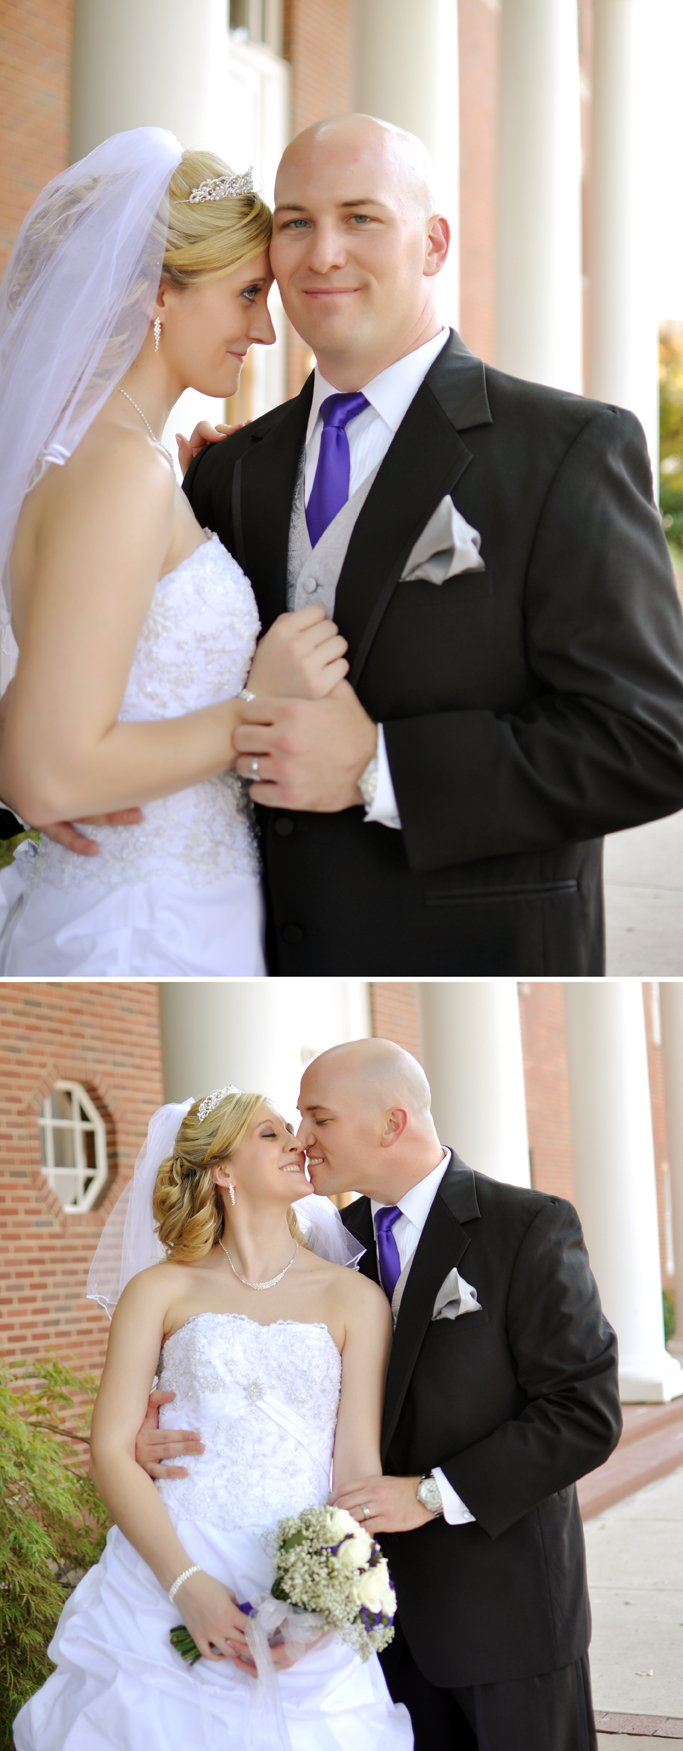 top photographers in tulsa and storybook weddings.